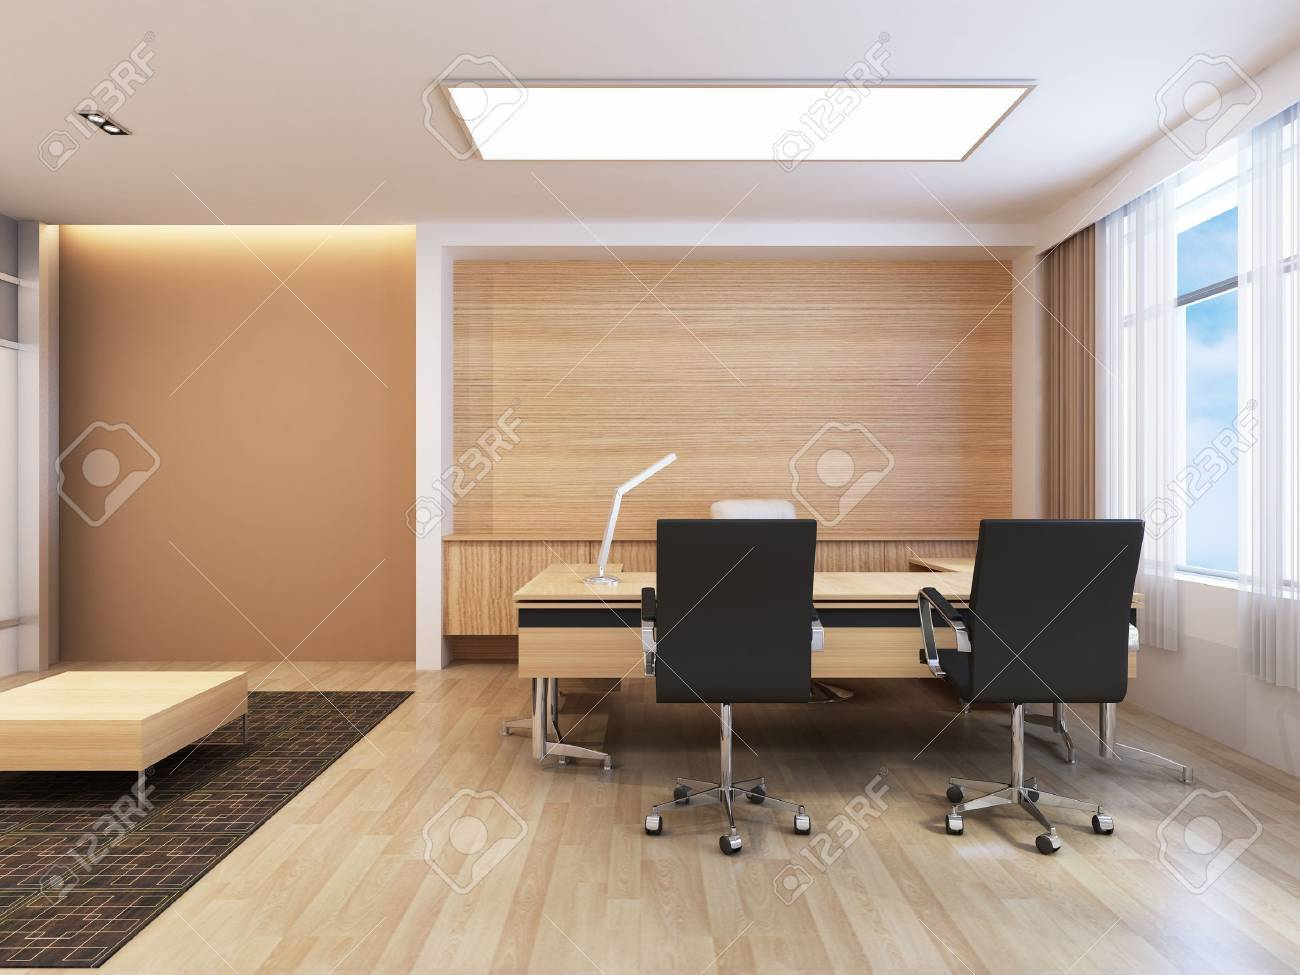 Office Working Area Stock Photo - 15750850